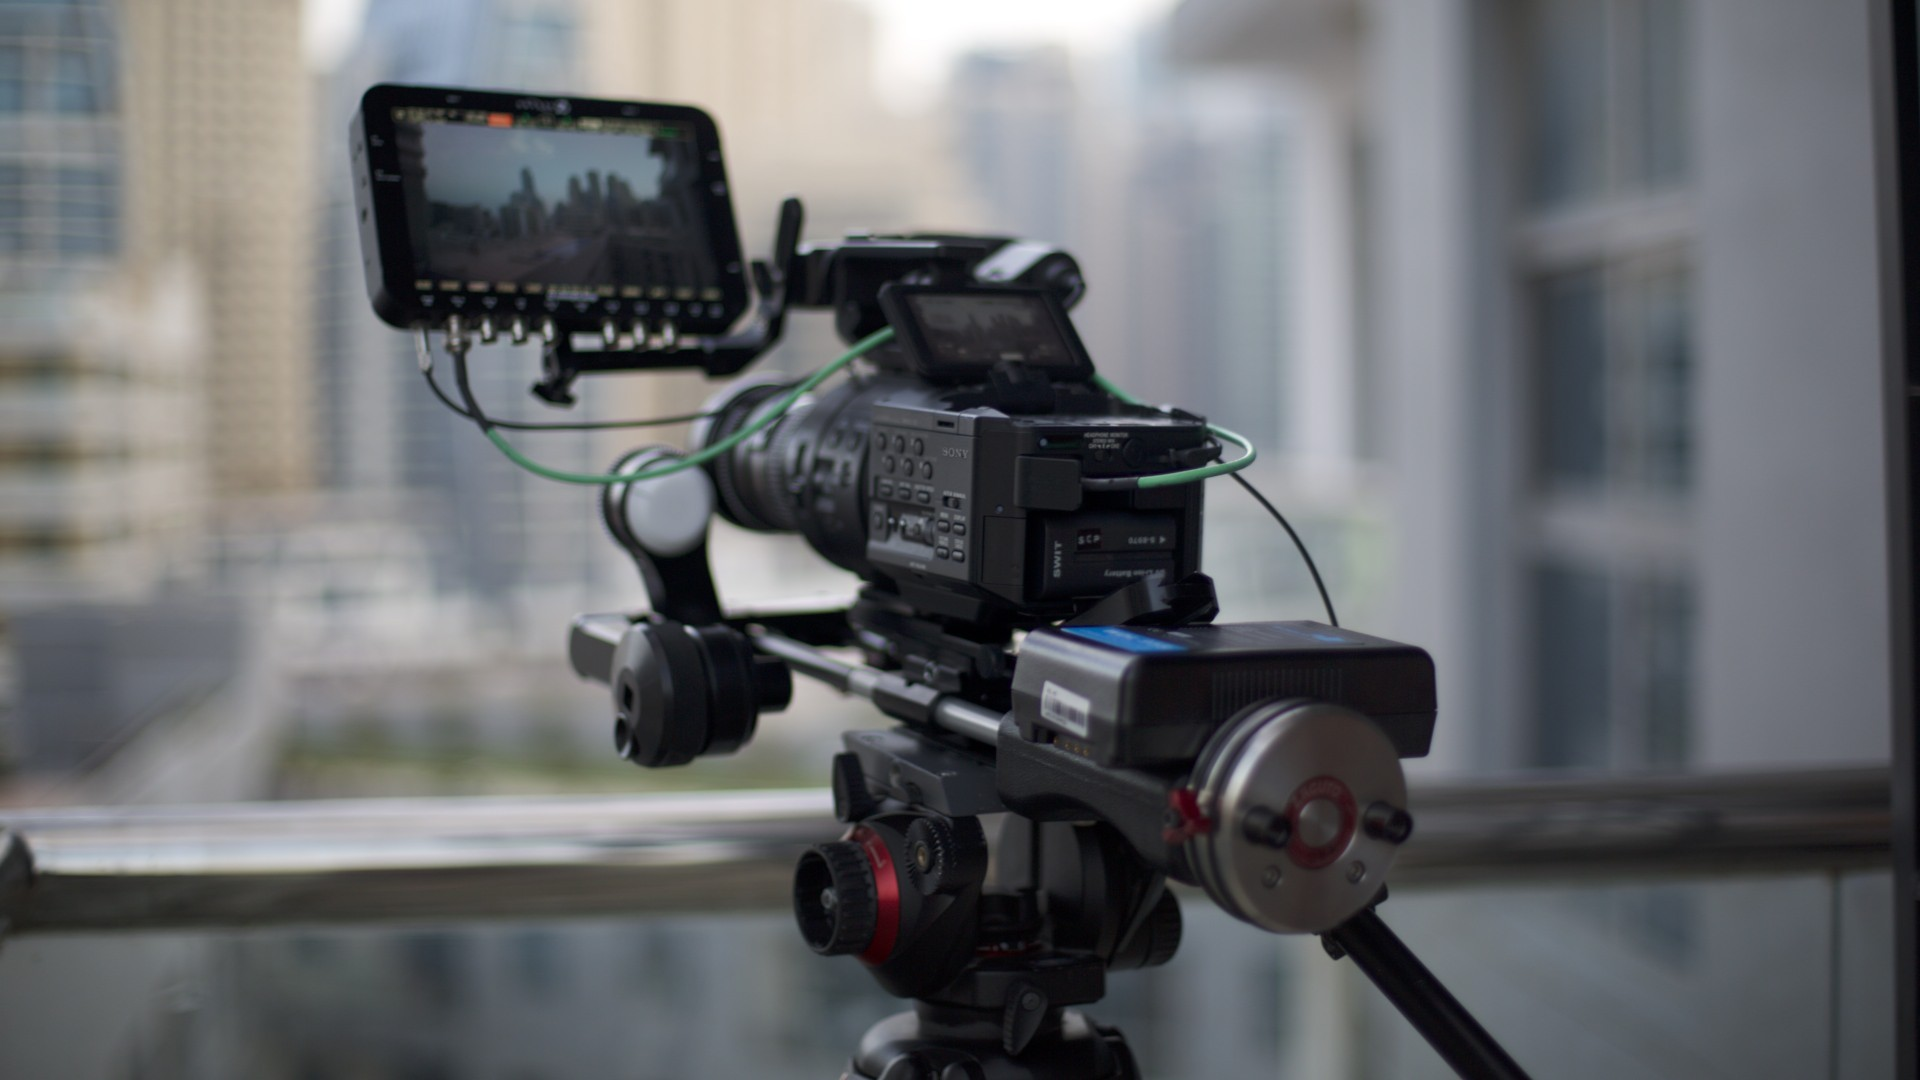 FS700 & Odyssey 7Q – Dubai Marina in 4K and lens resolution tests